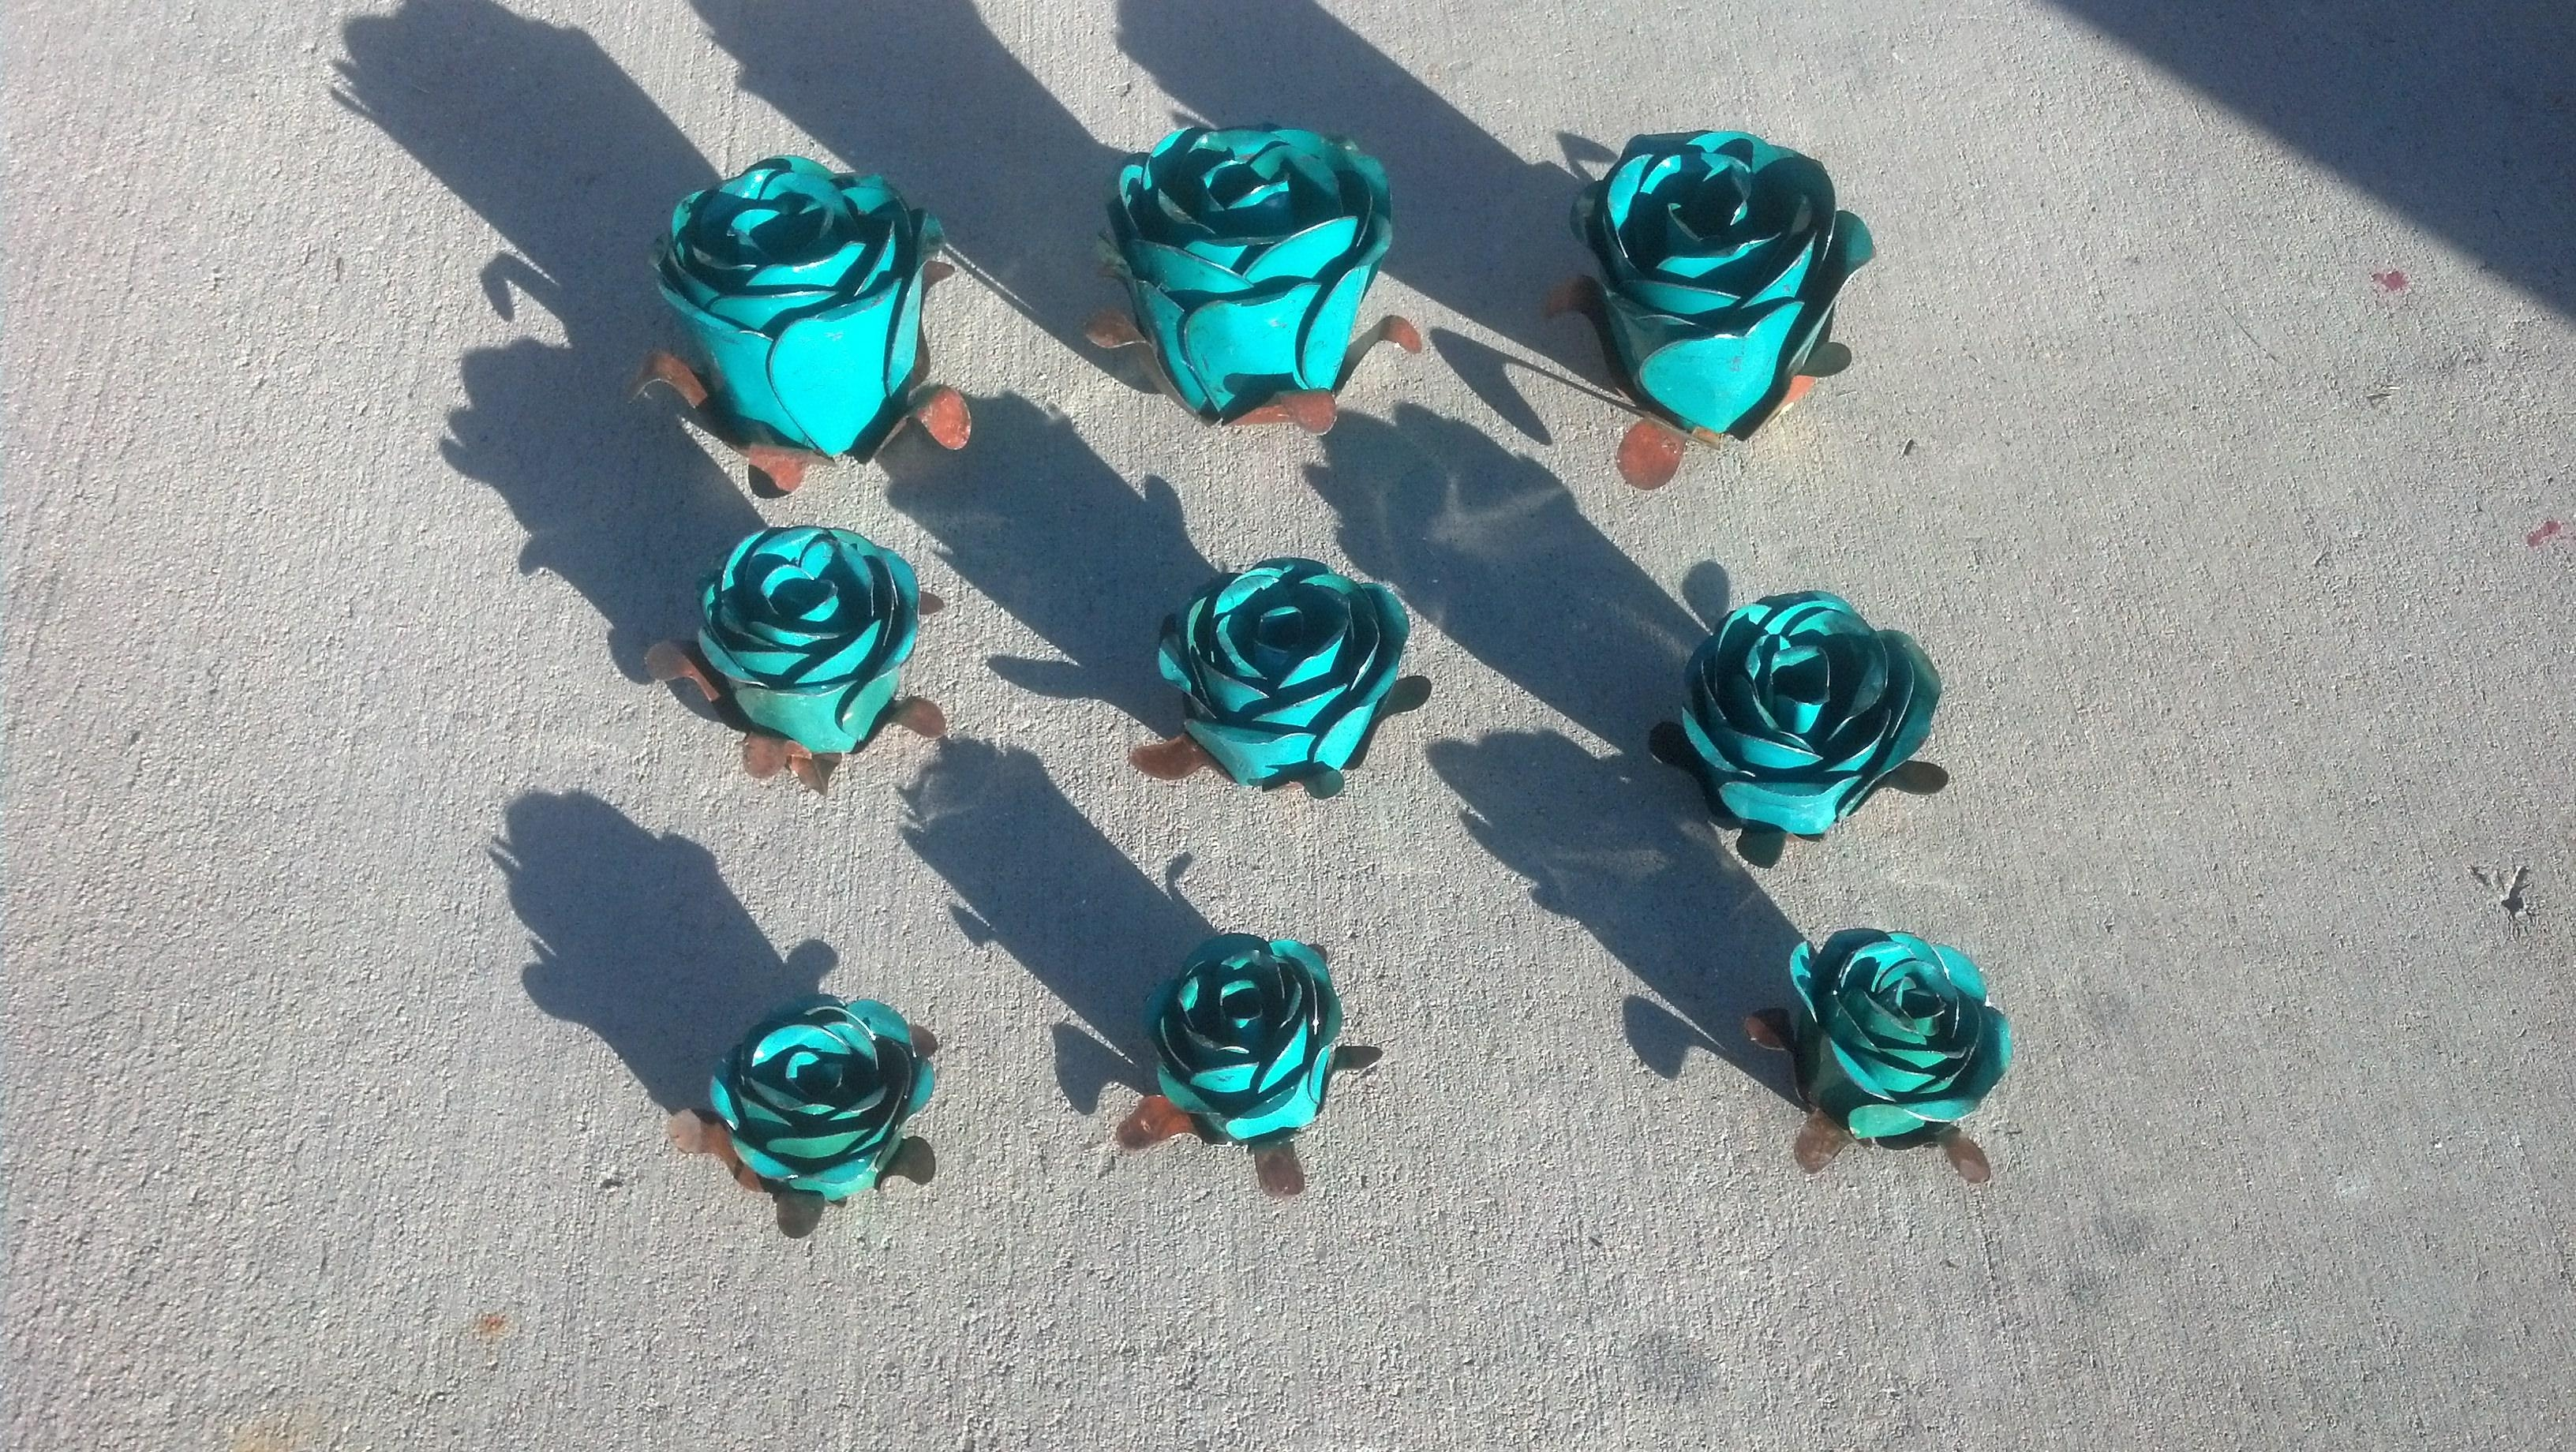 Roses Metal Art From Mexico Wholesale | Westwood Pavillion With Mexican Metal Art (Image 15 of 20)